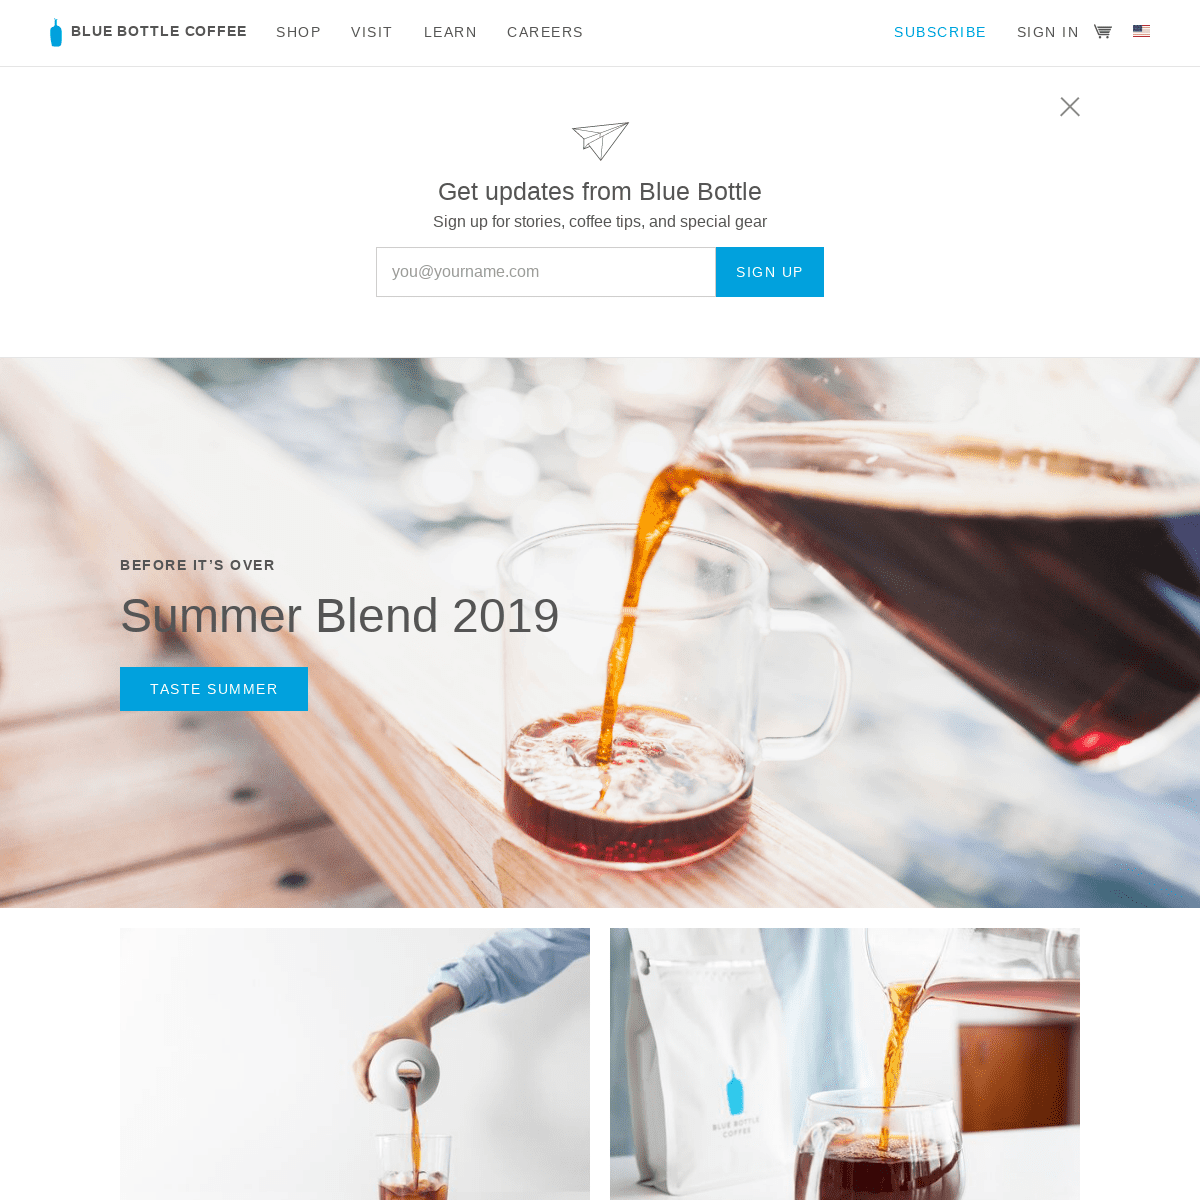 Coffee Roaster - Brewers, Subscriptions & Brew Guides - Blue Bottle Coffee